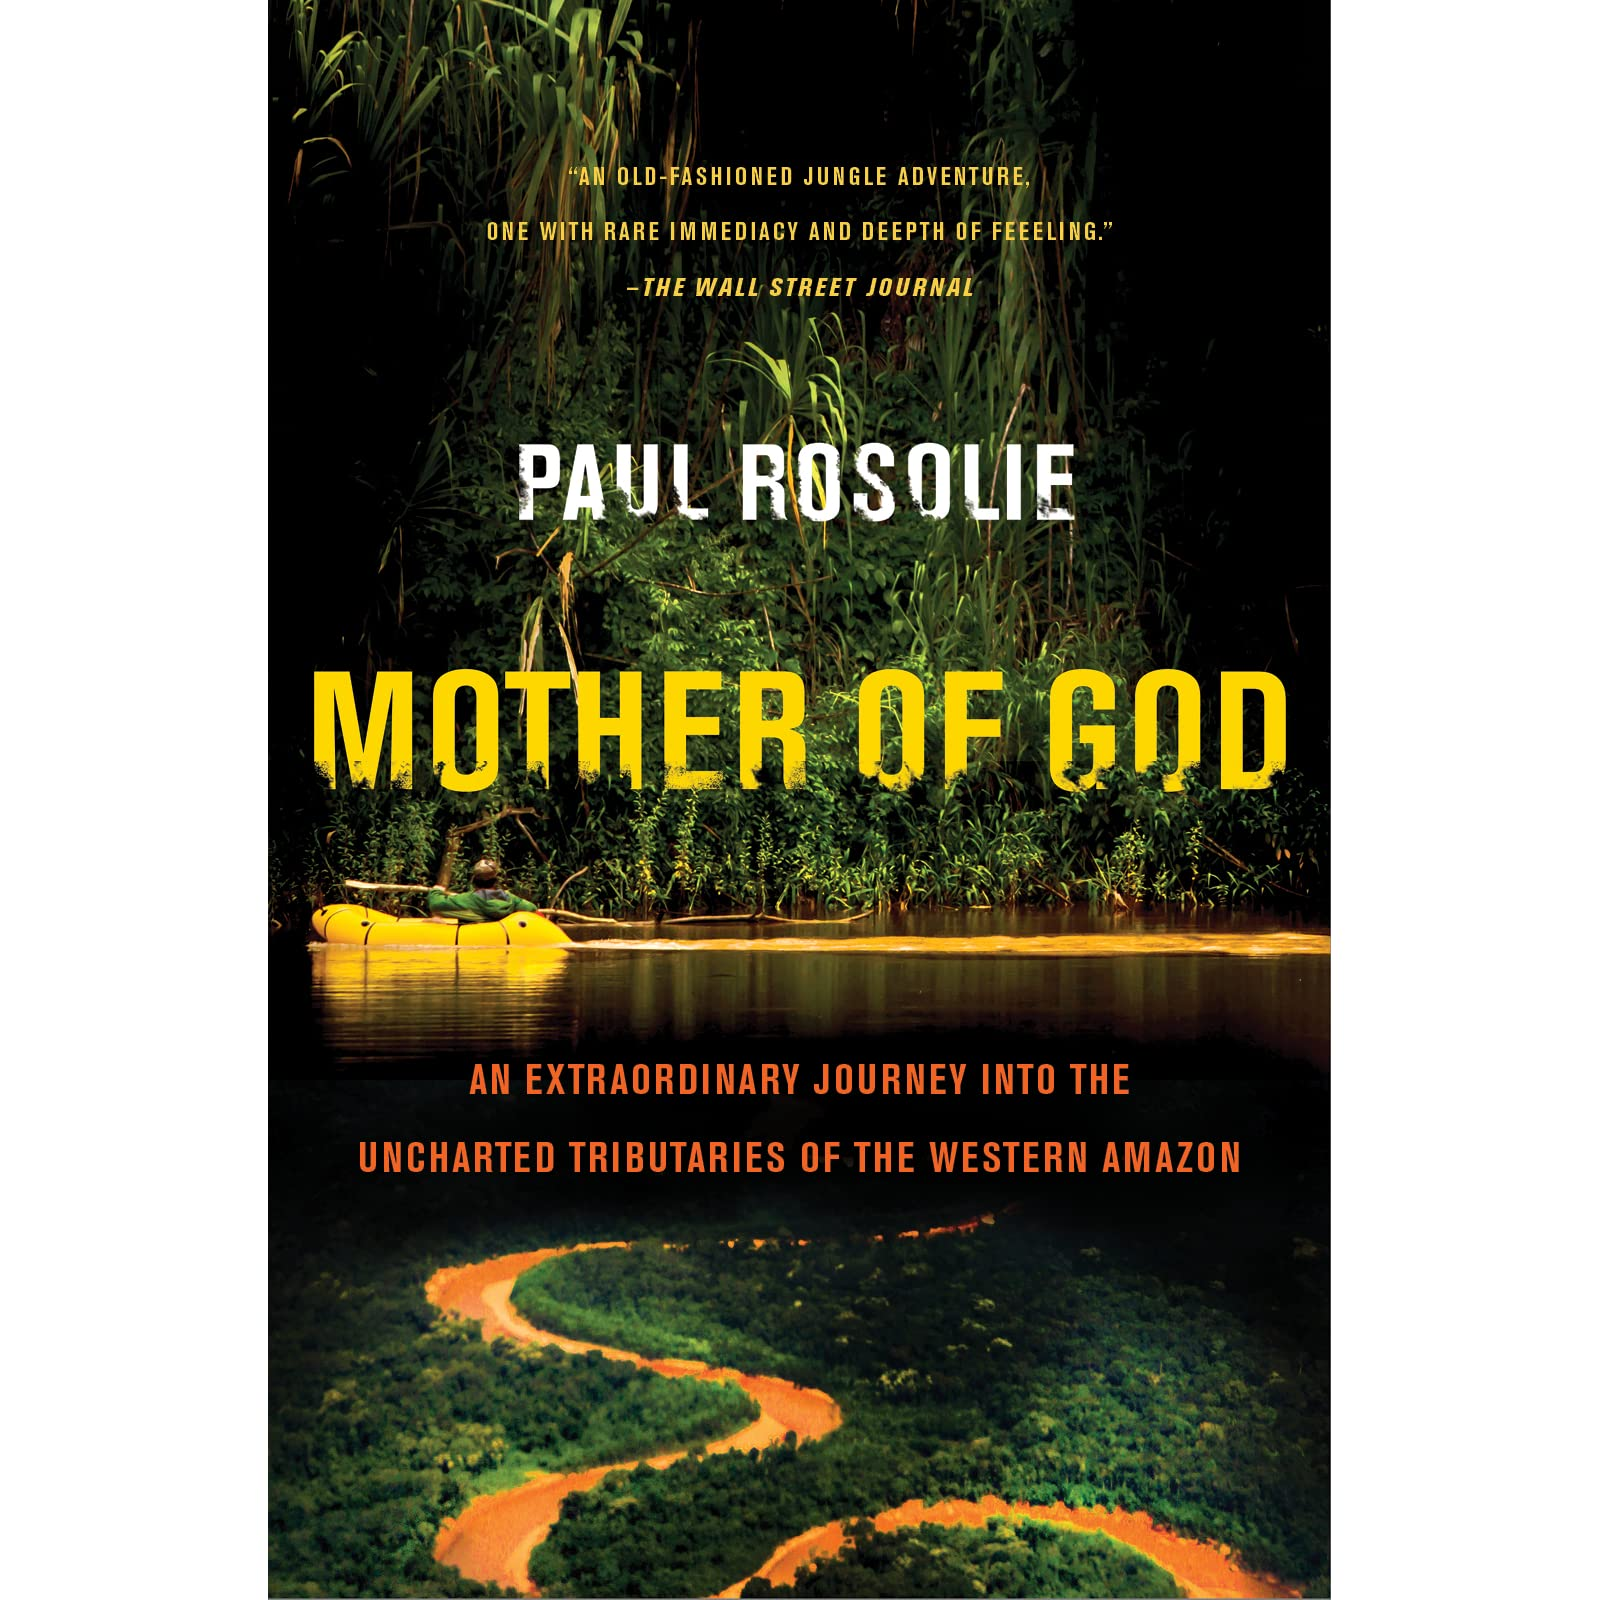 Mother of god an extraordinary journey into the uncharted mother of god an extraordinary journey into the uncharted tributaries of the western amazon by paul rosolie fandeluxe Gallery